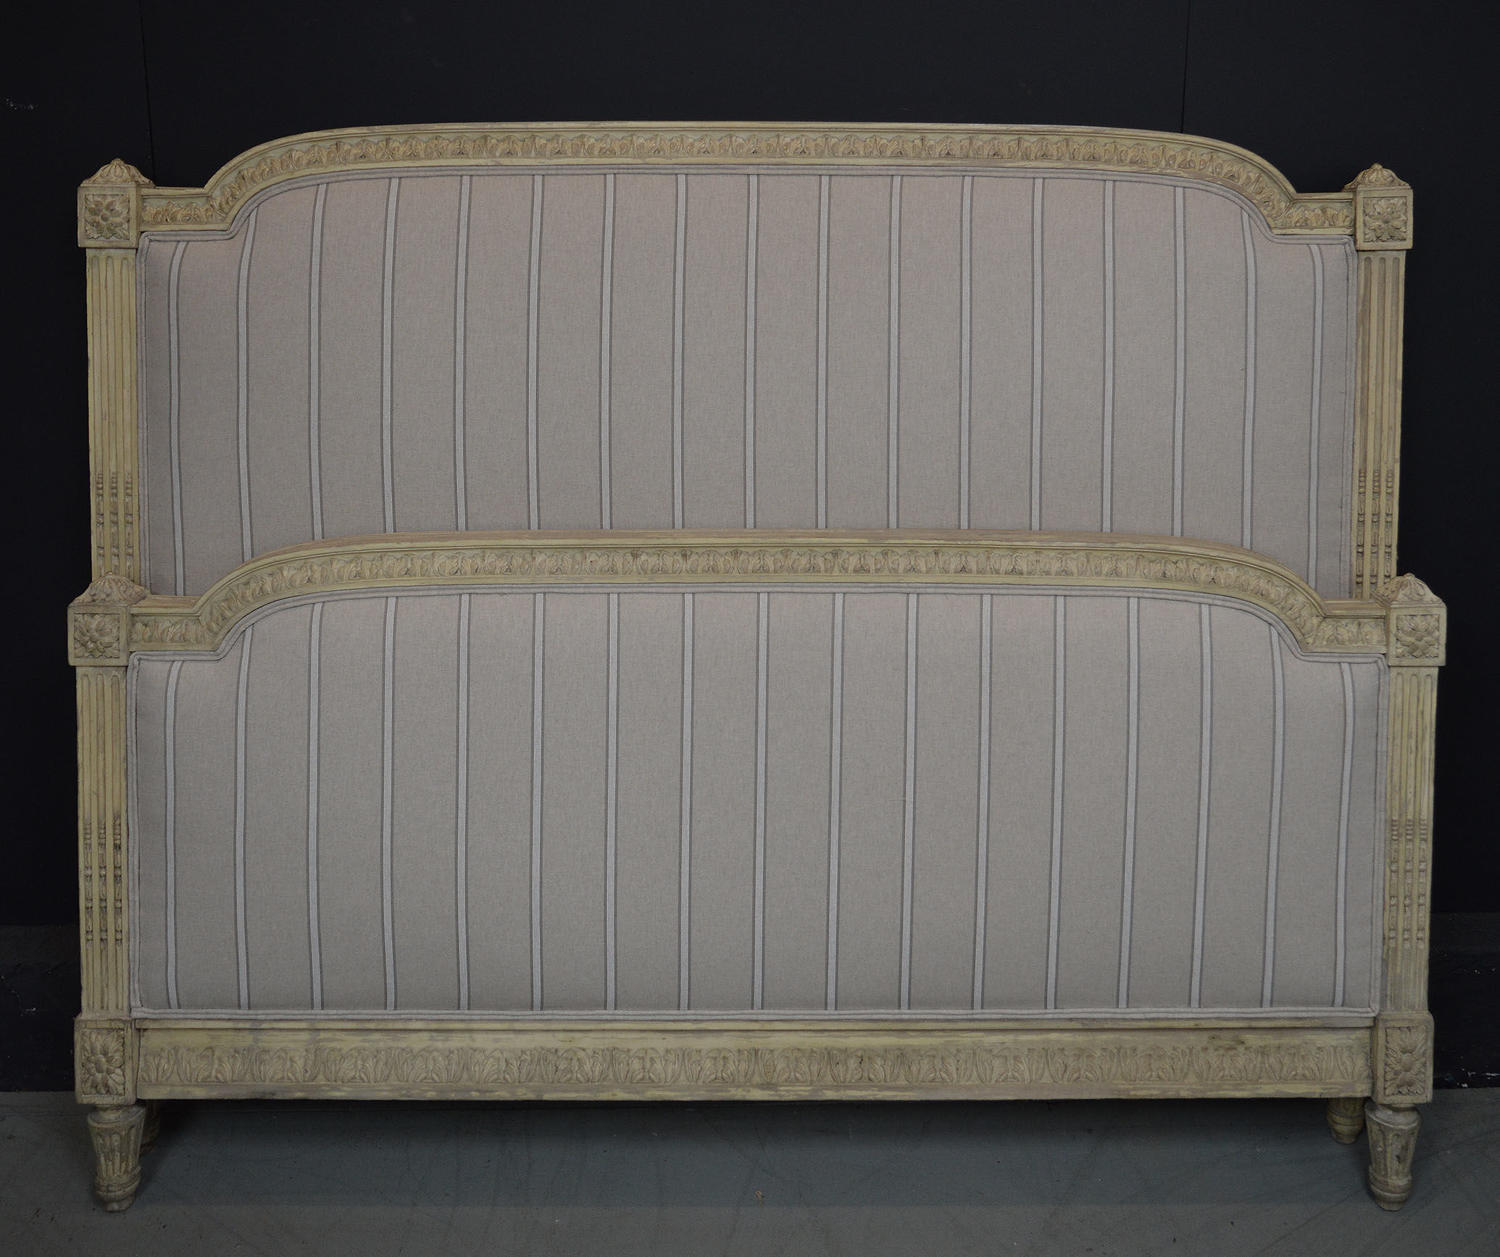 19th Century King-size Louis XVI style Upholstered Bedstead